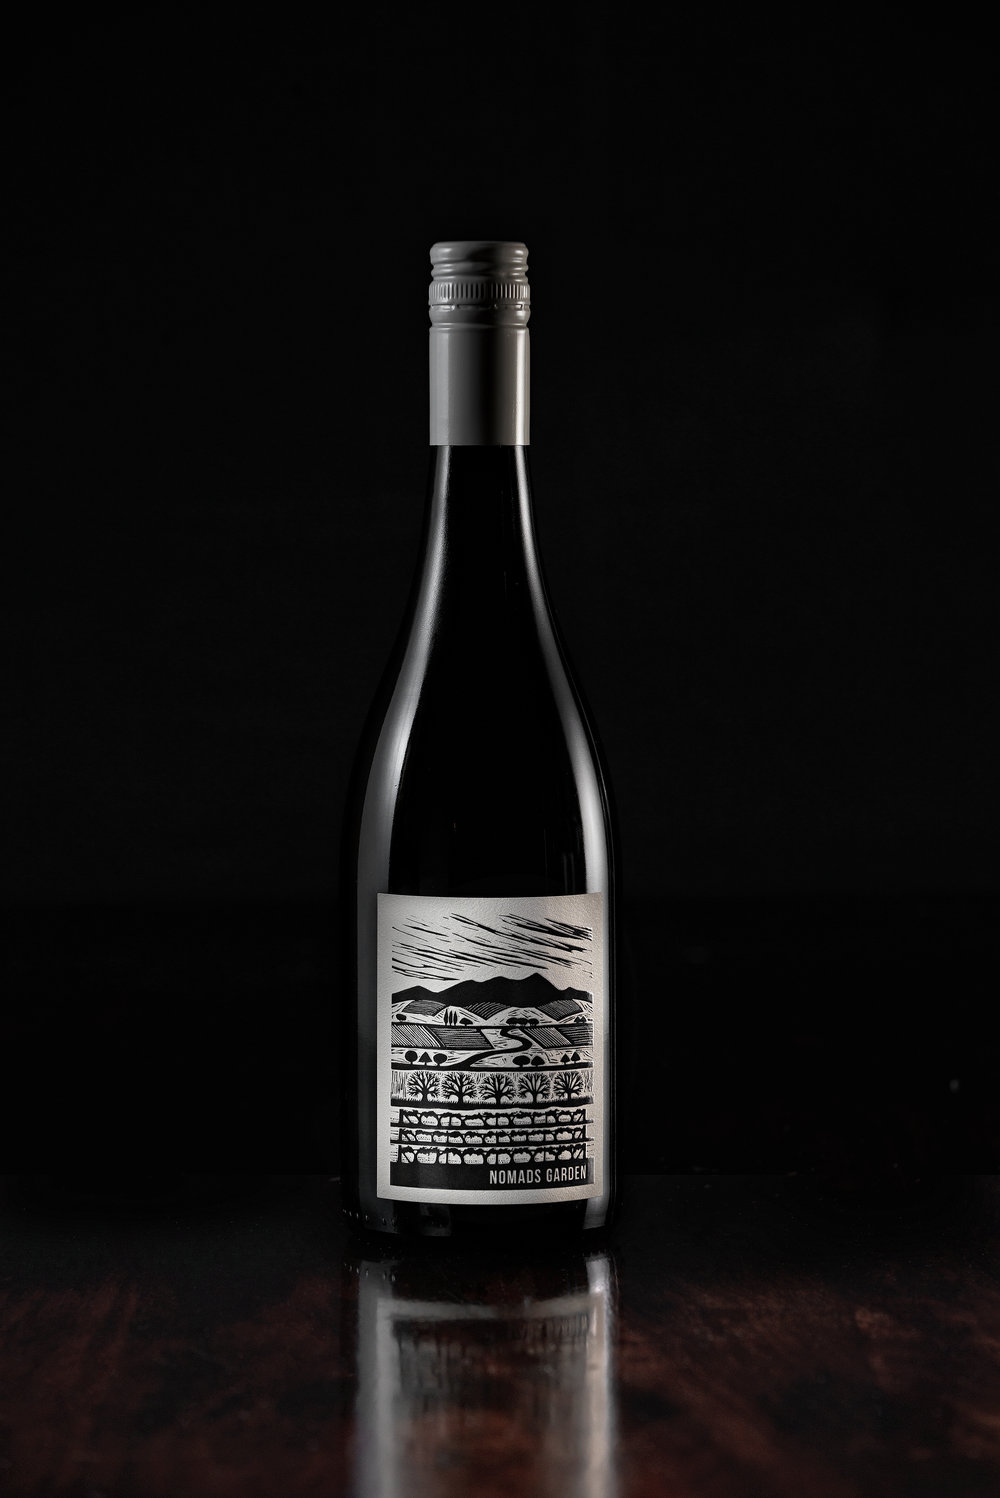 2018 SAUVIGNON BLANC - Handmade - Wild Yeast Ferment - Unfined - No Enzyme AddedNo Acid Added - Barrel Aged on LeesVineyard ~ Eurangie Park, King ValleySourced from uppermost vineyard in the King Valley, the Eurangie Park Vineyard is approximately 6km further up the valley past the village of Cheshunt and is run by one of the best in the game, Richard Carson. Paul has had a relationship with Richard dating back some 20+ years, when we decided we wanted to make a premium low intervention, single vineyard Sauvignon Blanc, Richards name was top of the list. The cool site along with Richards expert hand in the vineyard allows the grapes to ripen slowly and develop complex flavours whilst retaining good natural acidity.As with all wines released under the Nomads Garden range input from us in the winery was kept to an absolute minimum. Instead careful attention was paid to working closely with Richard the grower and ensuring the grapes were picked at exactly the right moment to ensure the natural pH and the flavours were just right.Picked in the cool of the night then given 7 hours on skins before gentle pressing straight to seasoned French oak barriques ranging between 4-7 years old. Oak of this age will impart very little, if any oak characteristics, instead we believe they are the best vessel for wines to ferment and age in. Oak is a natural product that allows the wines breath and evolve with time, something not possible with stainless steel tanks. Natural wild yeast fermentation began within a couple of days, a slow cool ferment then progressed over 3 weeks with temperature not allowed to rise above 18c as to retain aromatics.Once fermentation was complete the Sauvignon Blanc was allowed 12 months to rest in barrel on its lees (lees are the solids that drop and of the wine post fermentation) to create texture. During this period barrels were stirred 8 times to build texture without overworking what we want to be a fresh wine. The wine was then lightly filtered and bo